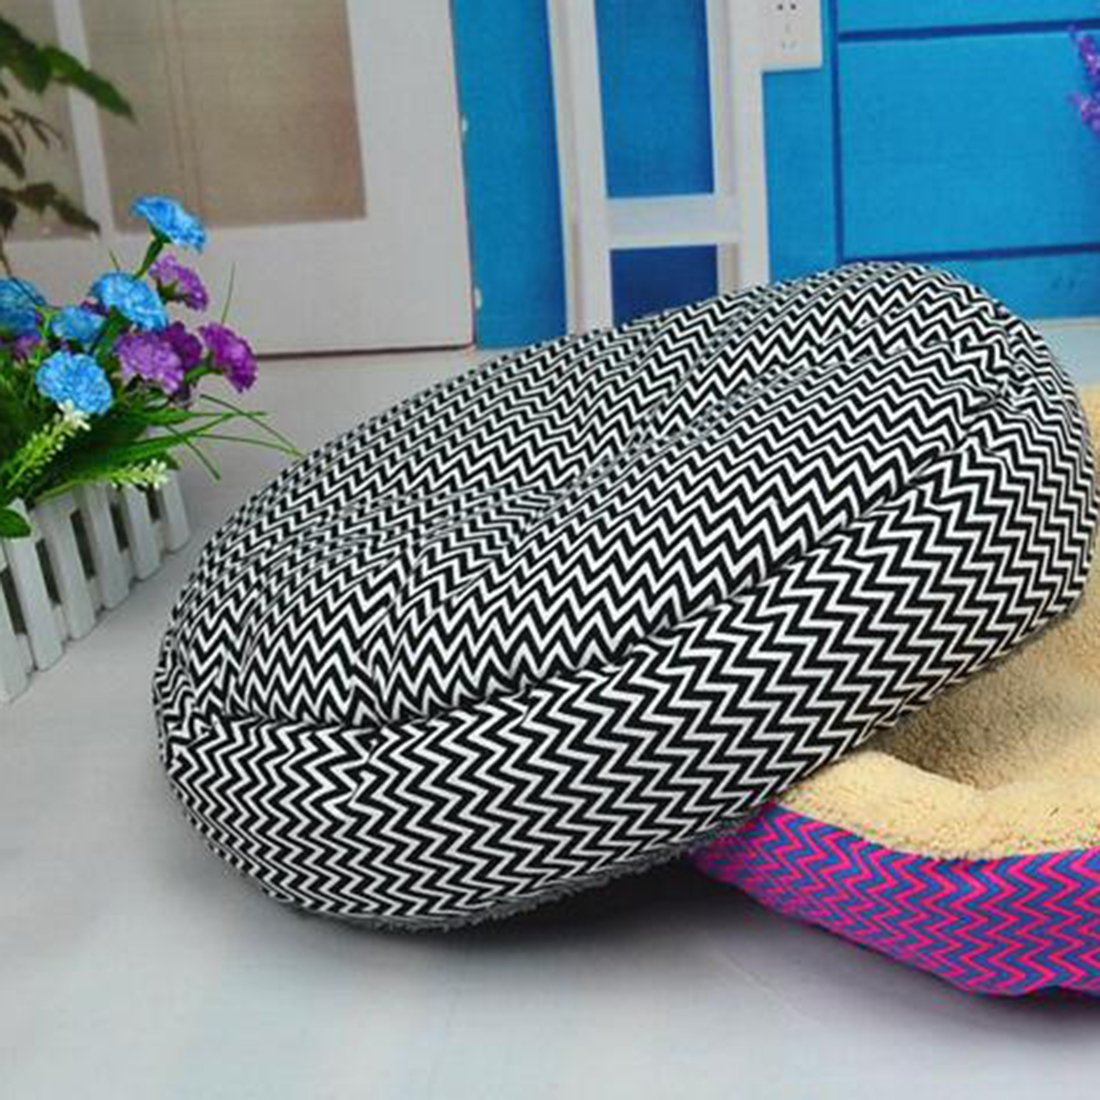 Warm Pet Beds for Comfortable Sleeping of Puppies and Kitten Suitable for Winter Made of PP Cotton 3